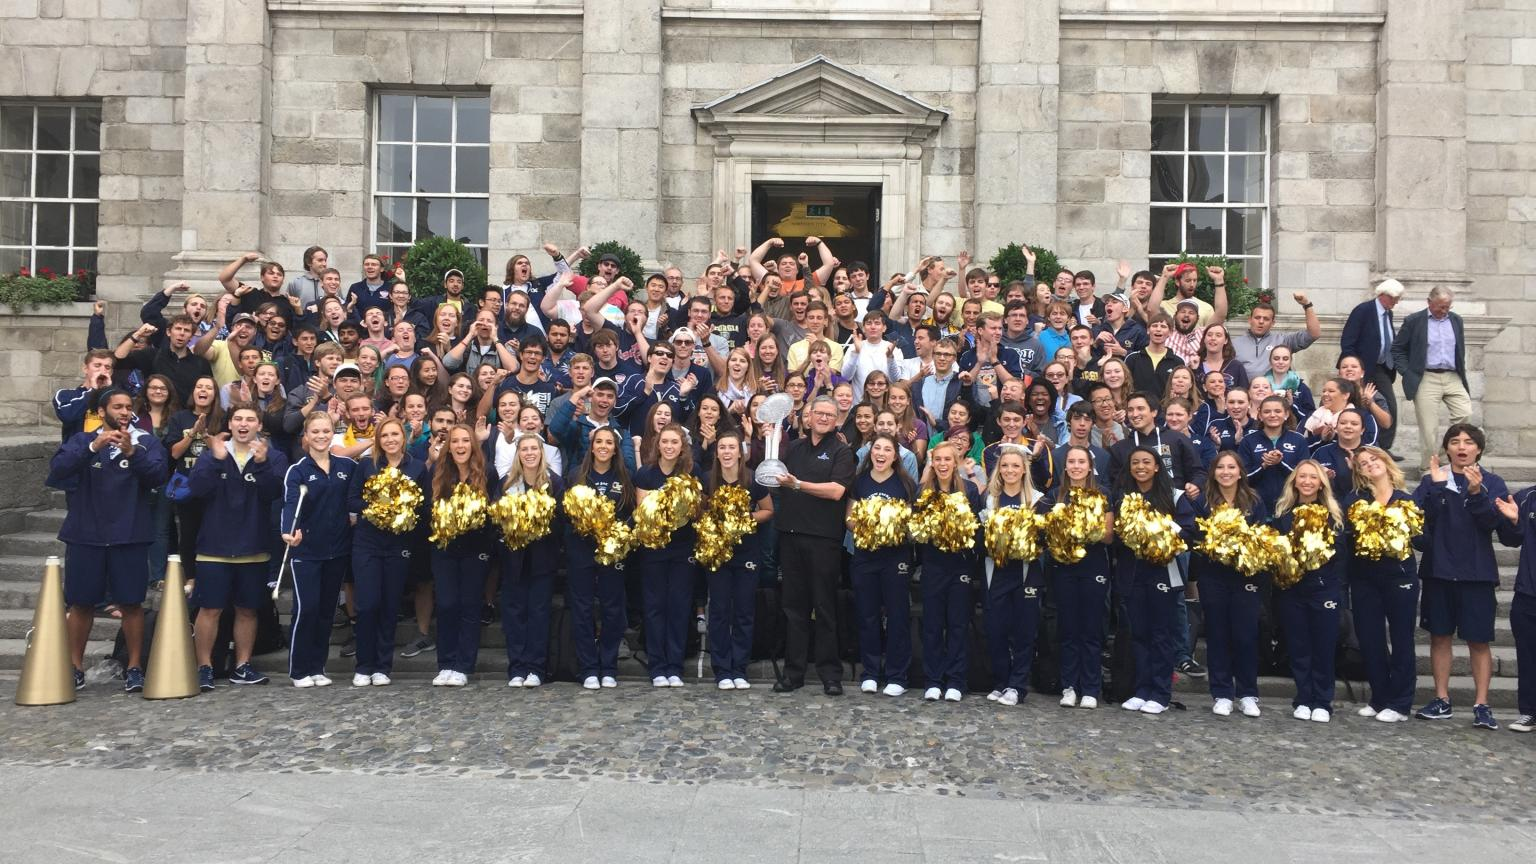 The Marching Band while on a trip to Ireland.